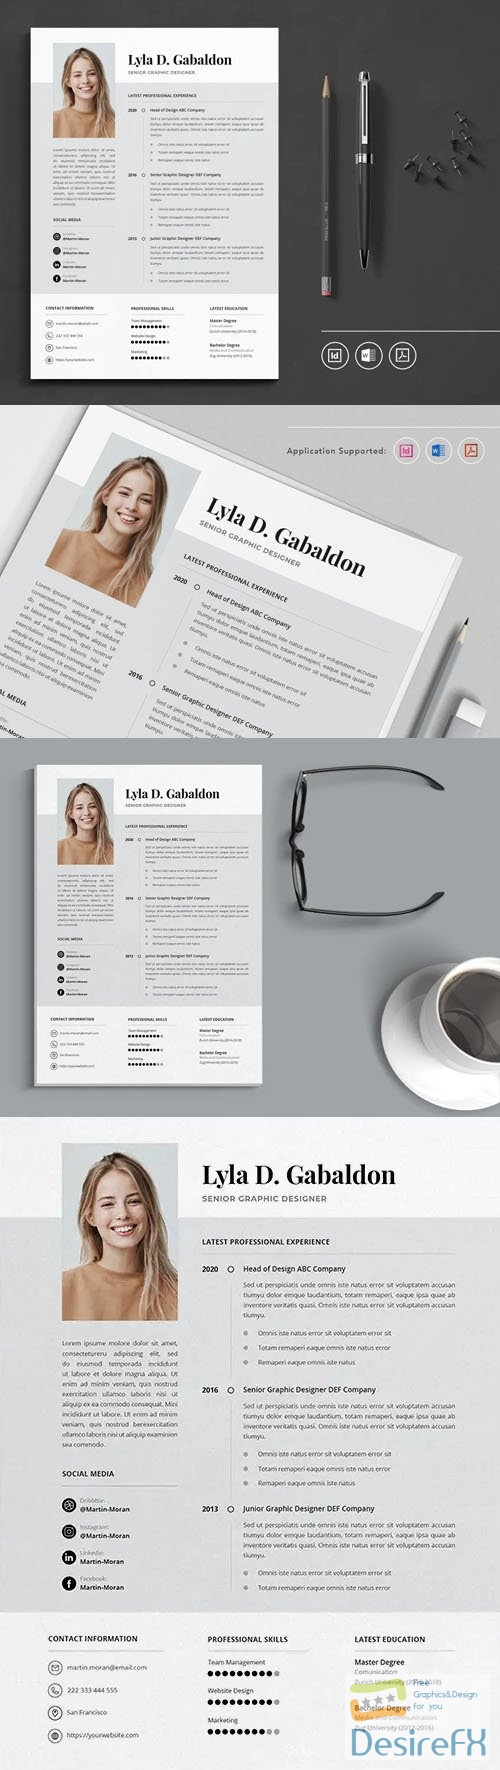 CV Resume Indesign Template + MS WORD Template